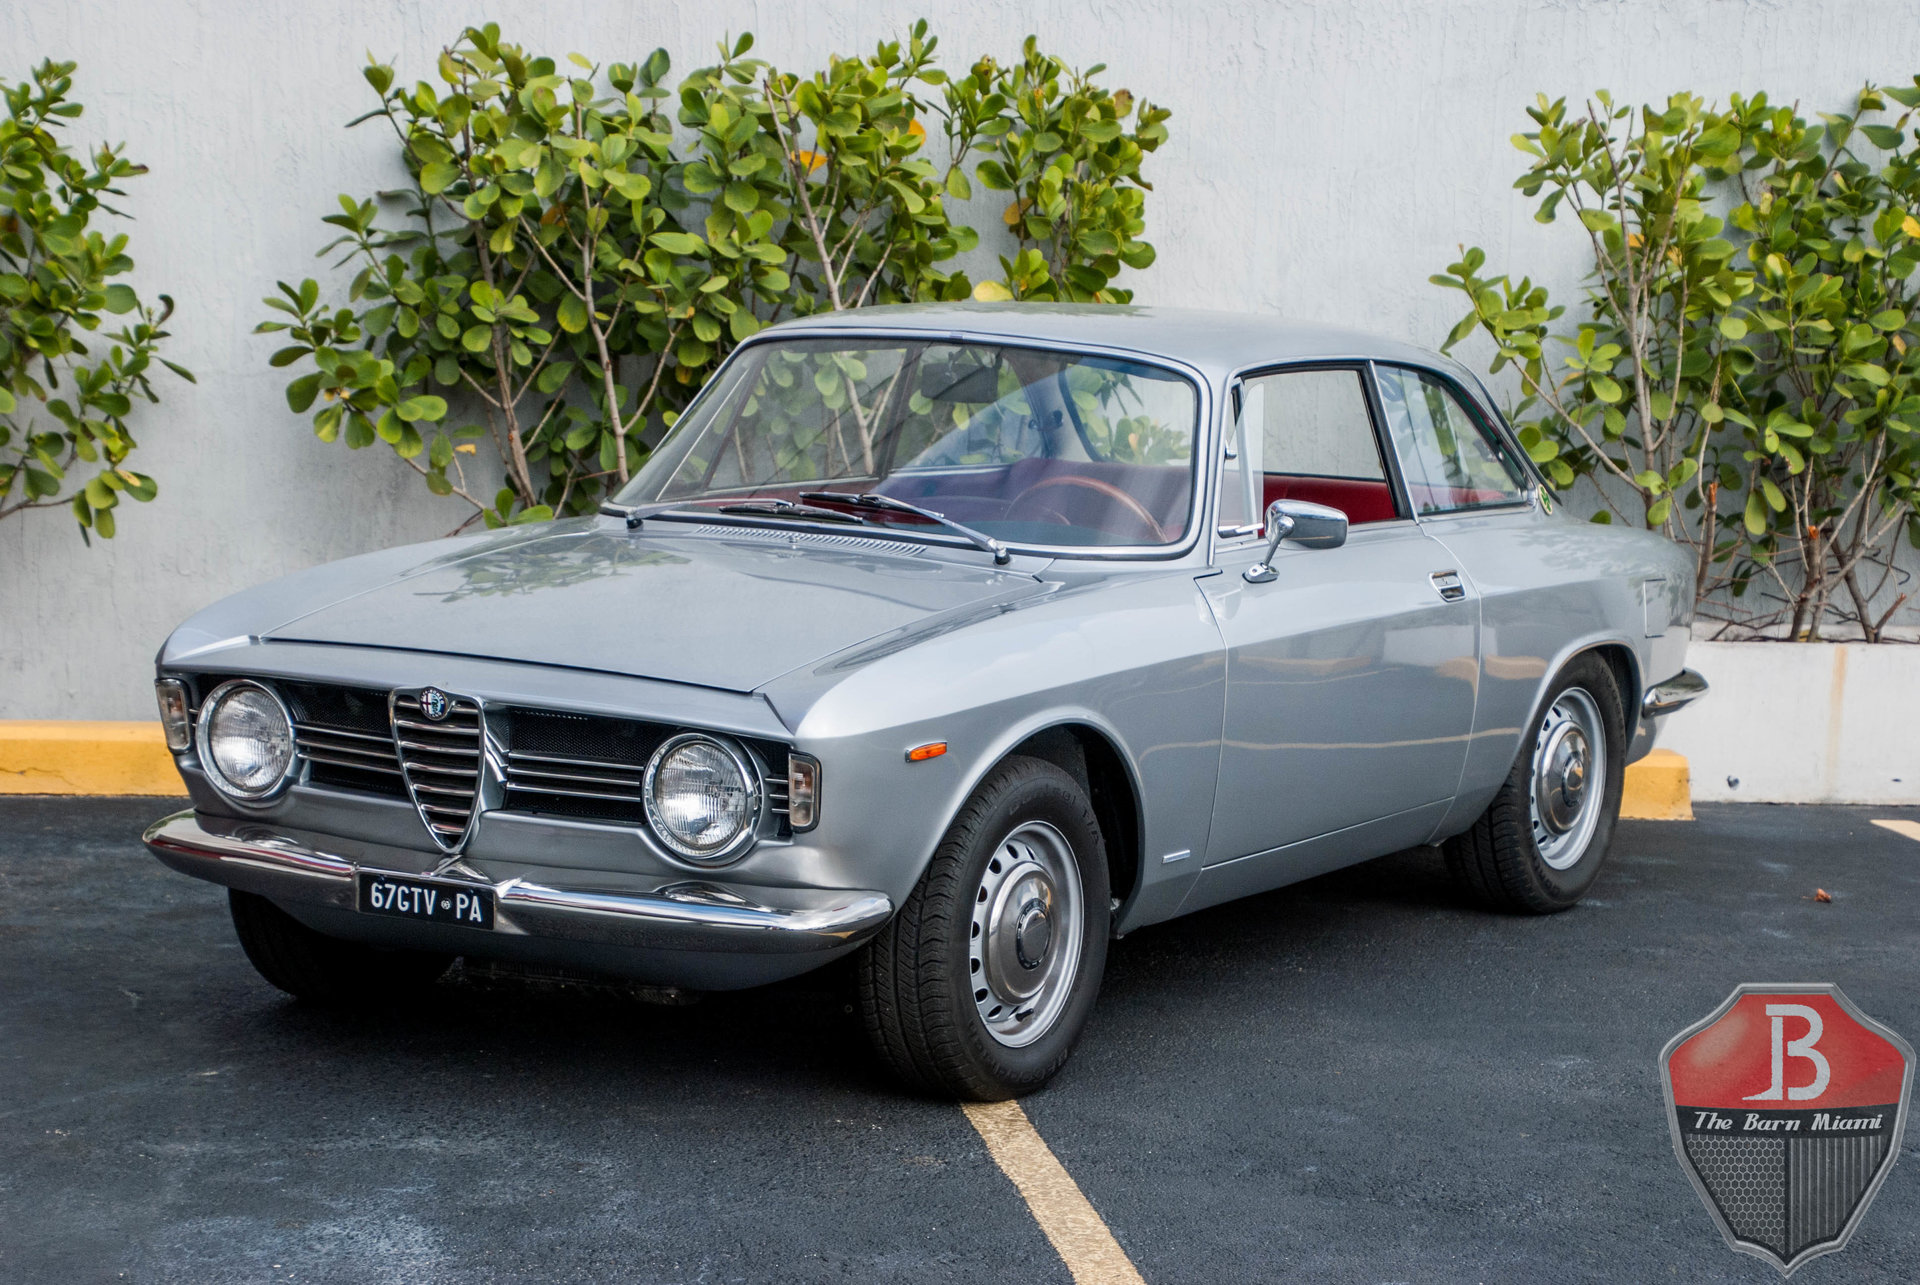 1967 Alfa Romeo Giulia | The Barn Miami